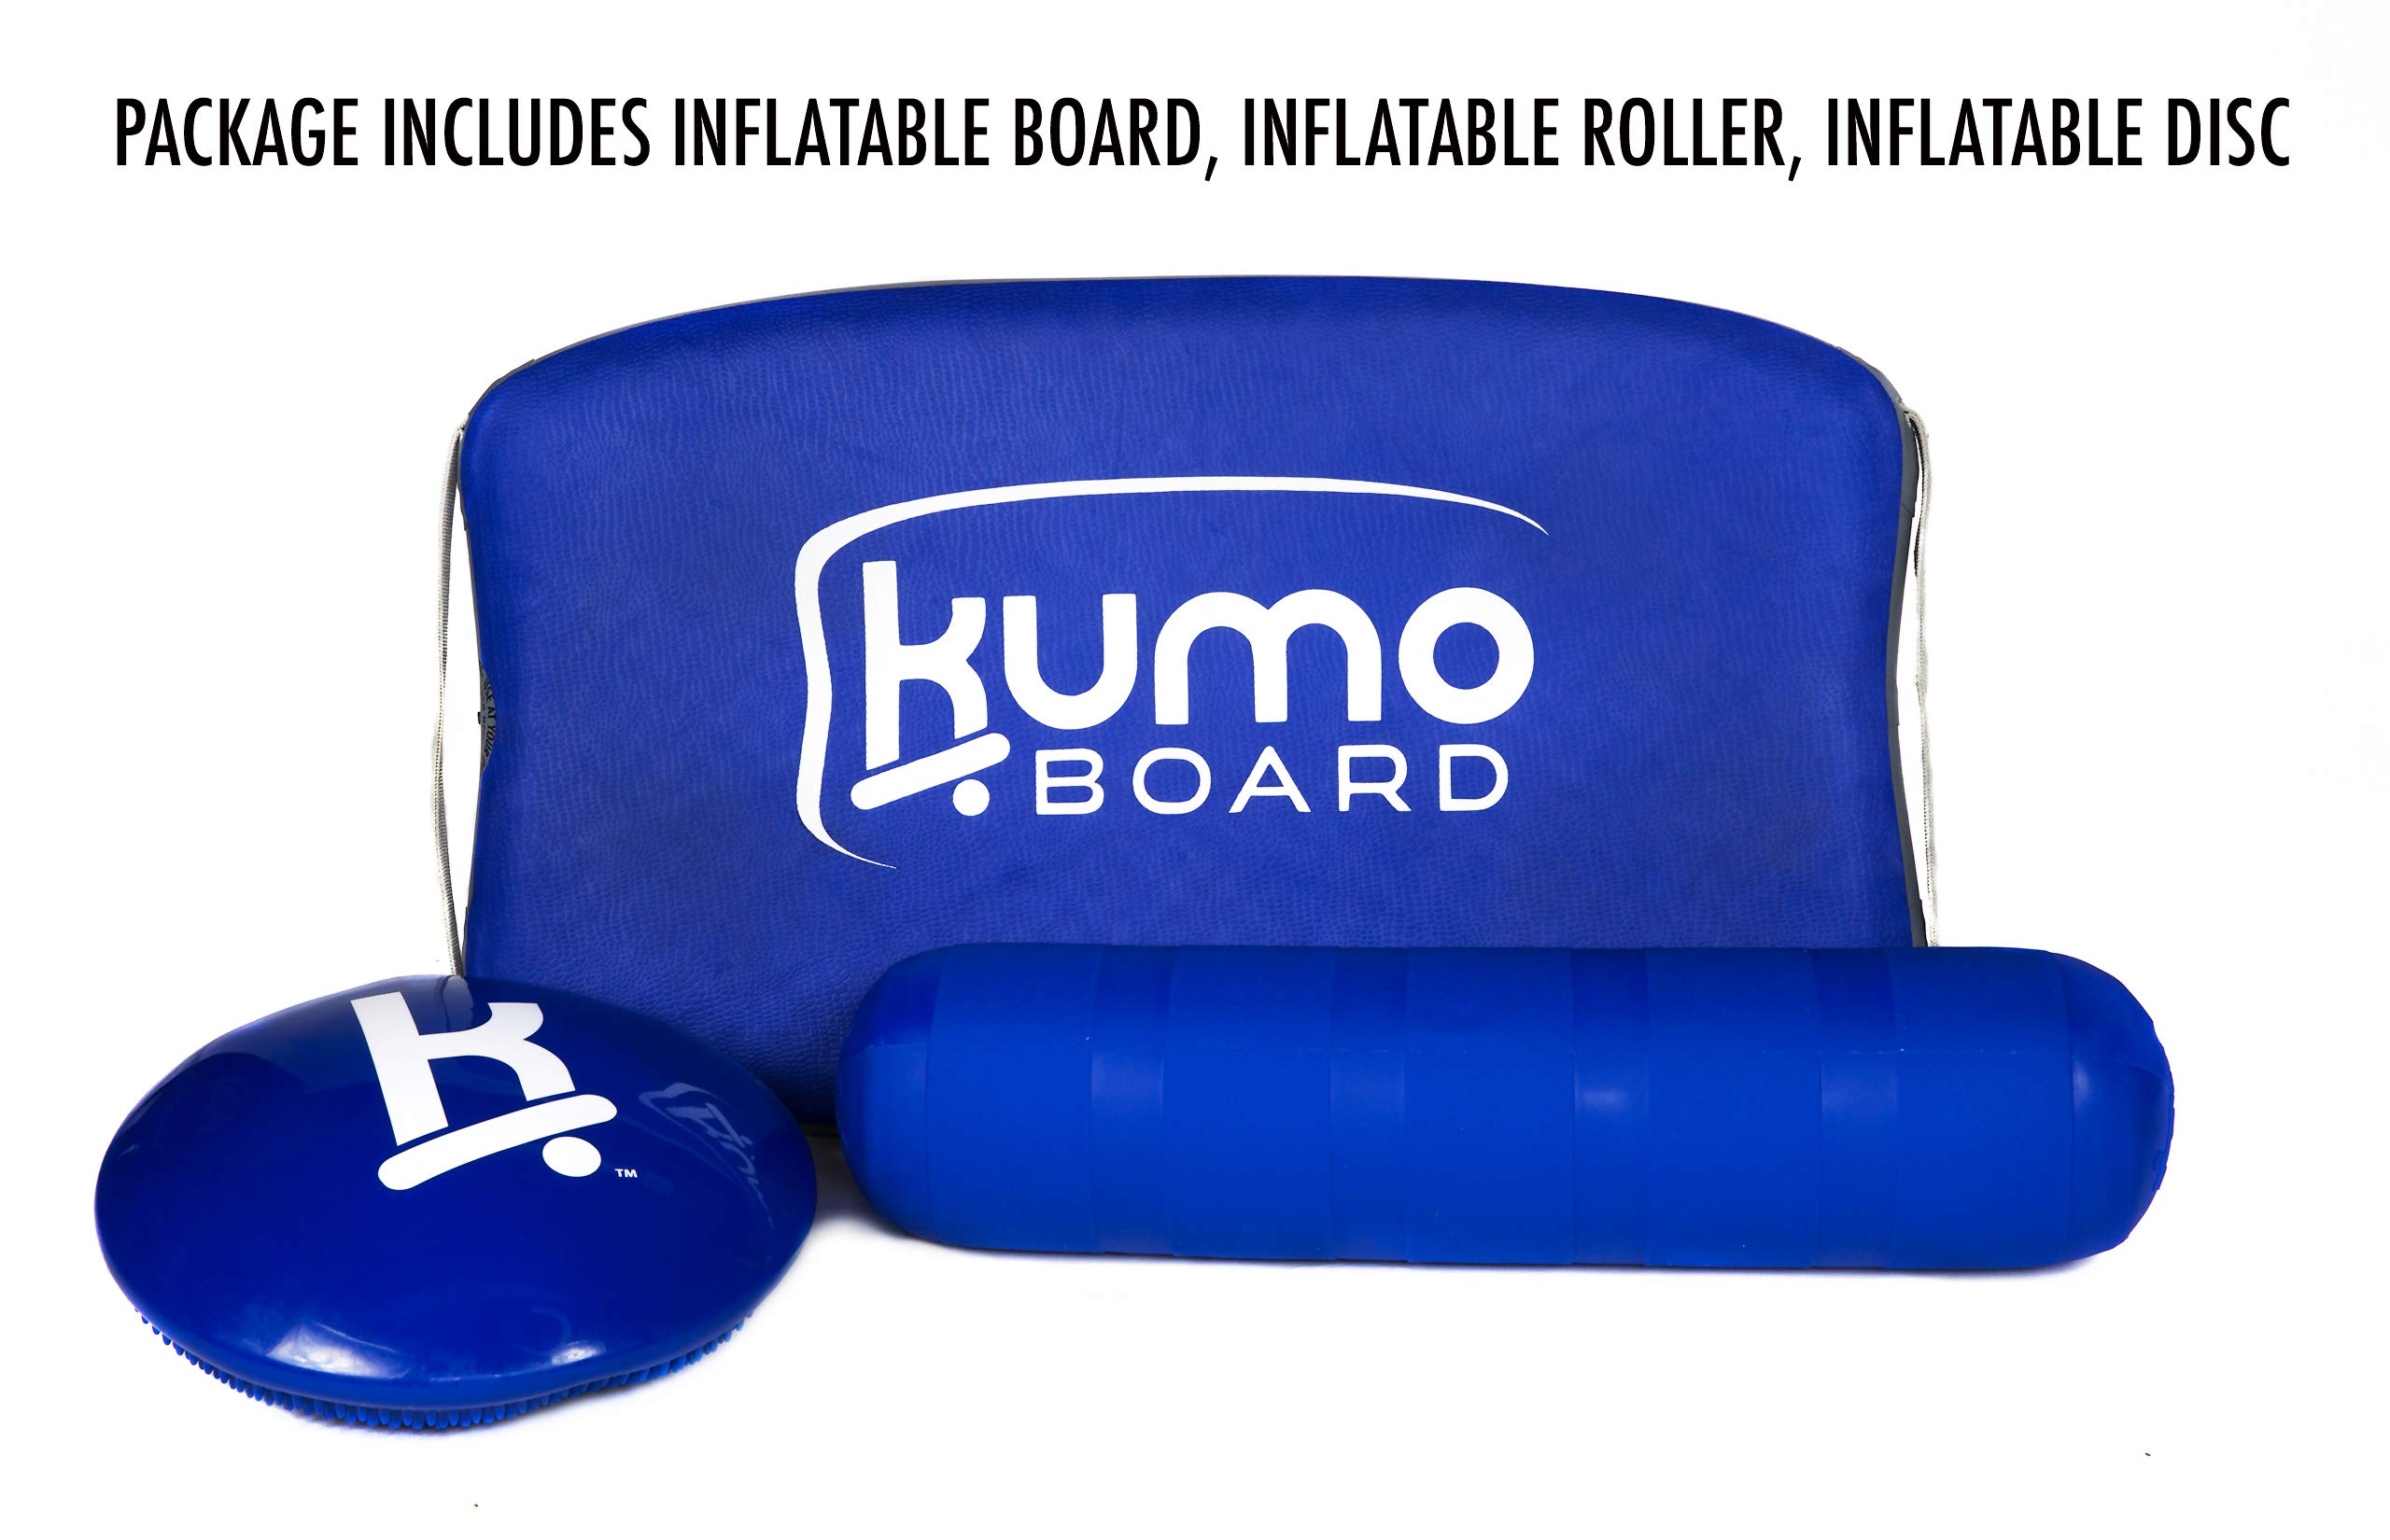 KUMO Inflatable Balance Board for Surf Training, Exercise, Physical Therapy, Standing Desk & Kids - Balancing Rocker Boards with Roller - Soft Inflatable Surfing Trainer Improves Balance & Strength by Kumo Board (Image #4)